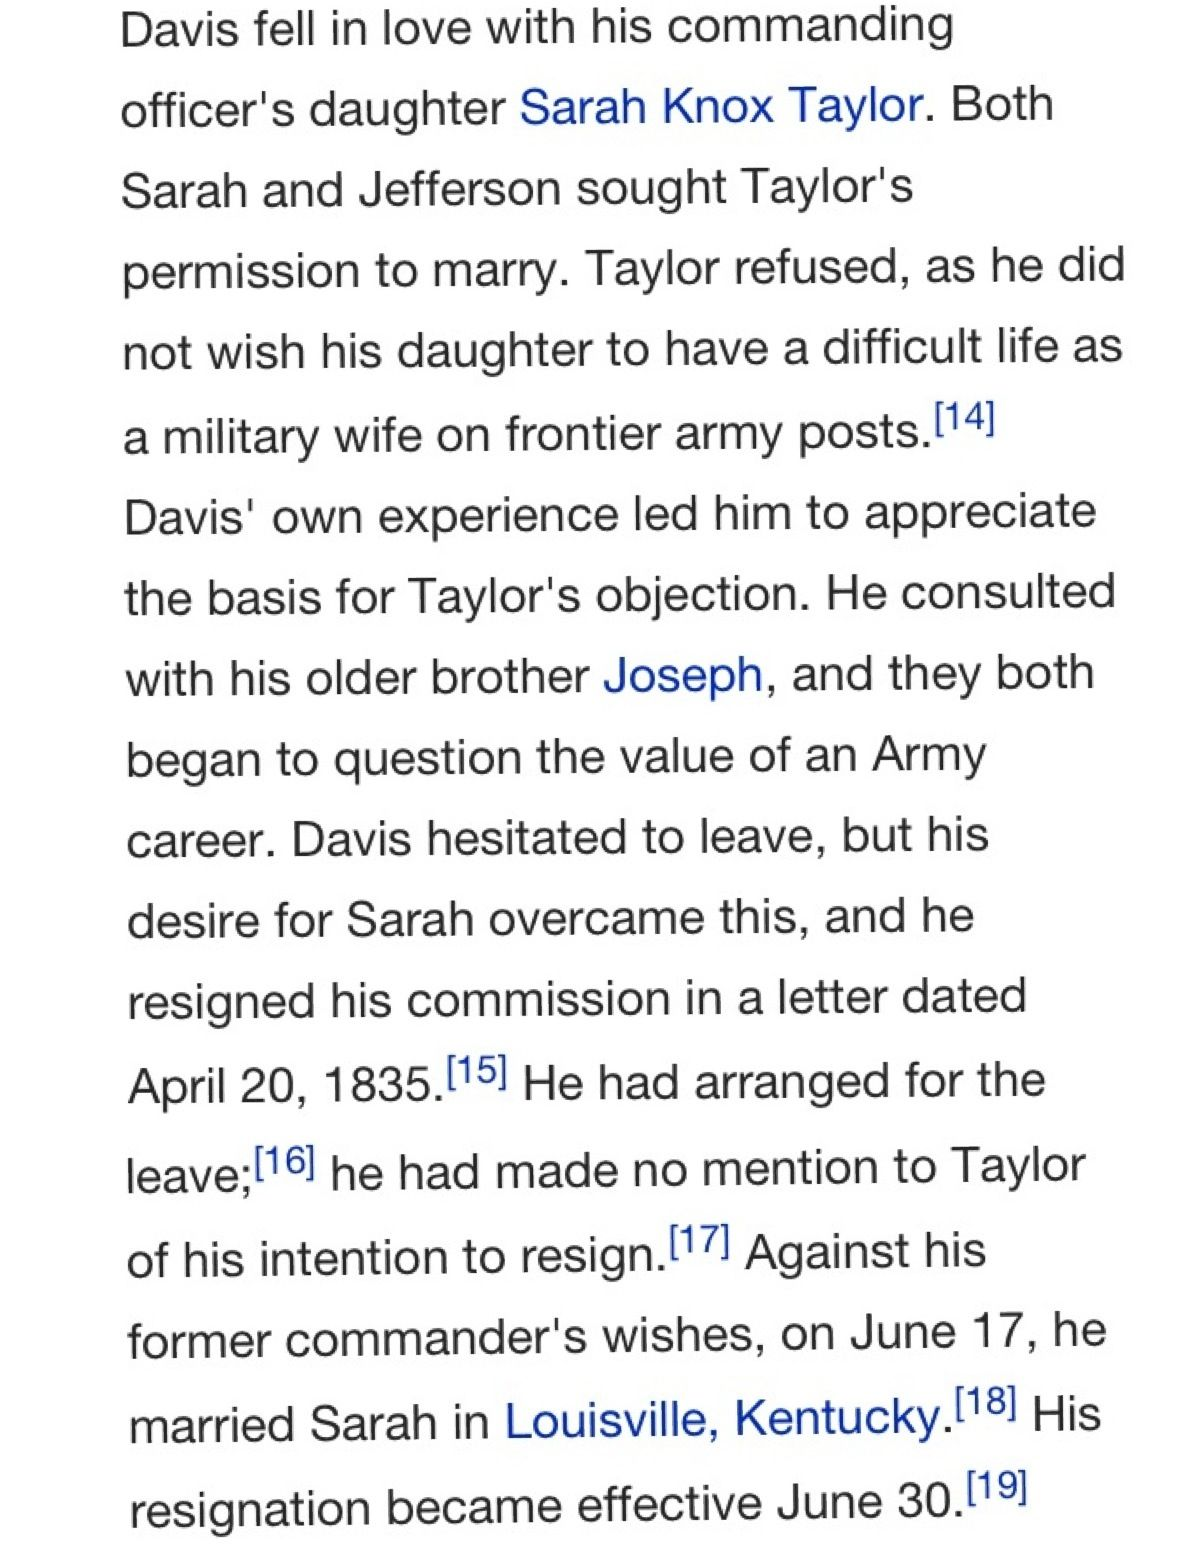 Marriage to Sarah Knox Taylor Davis Army post, Jefferson